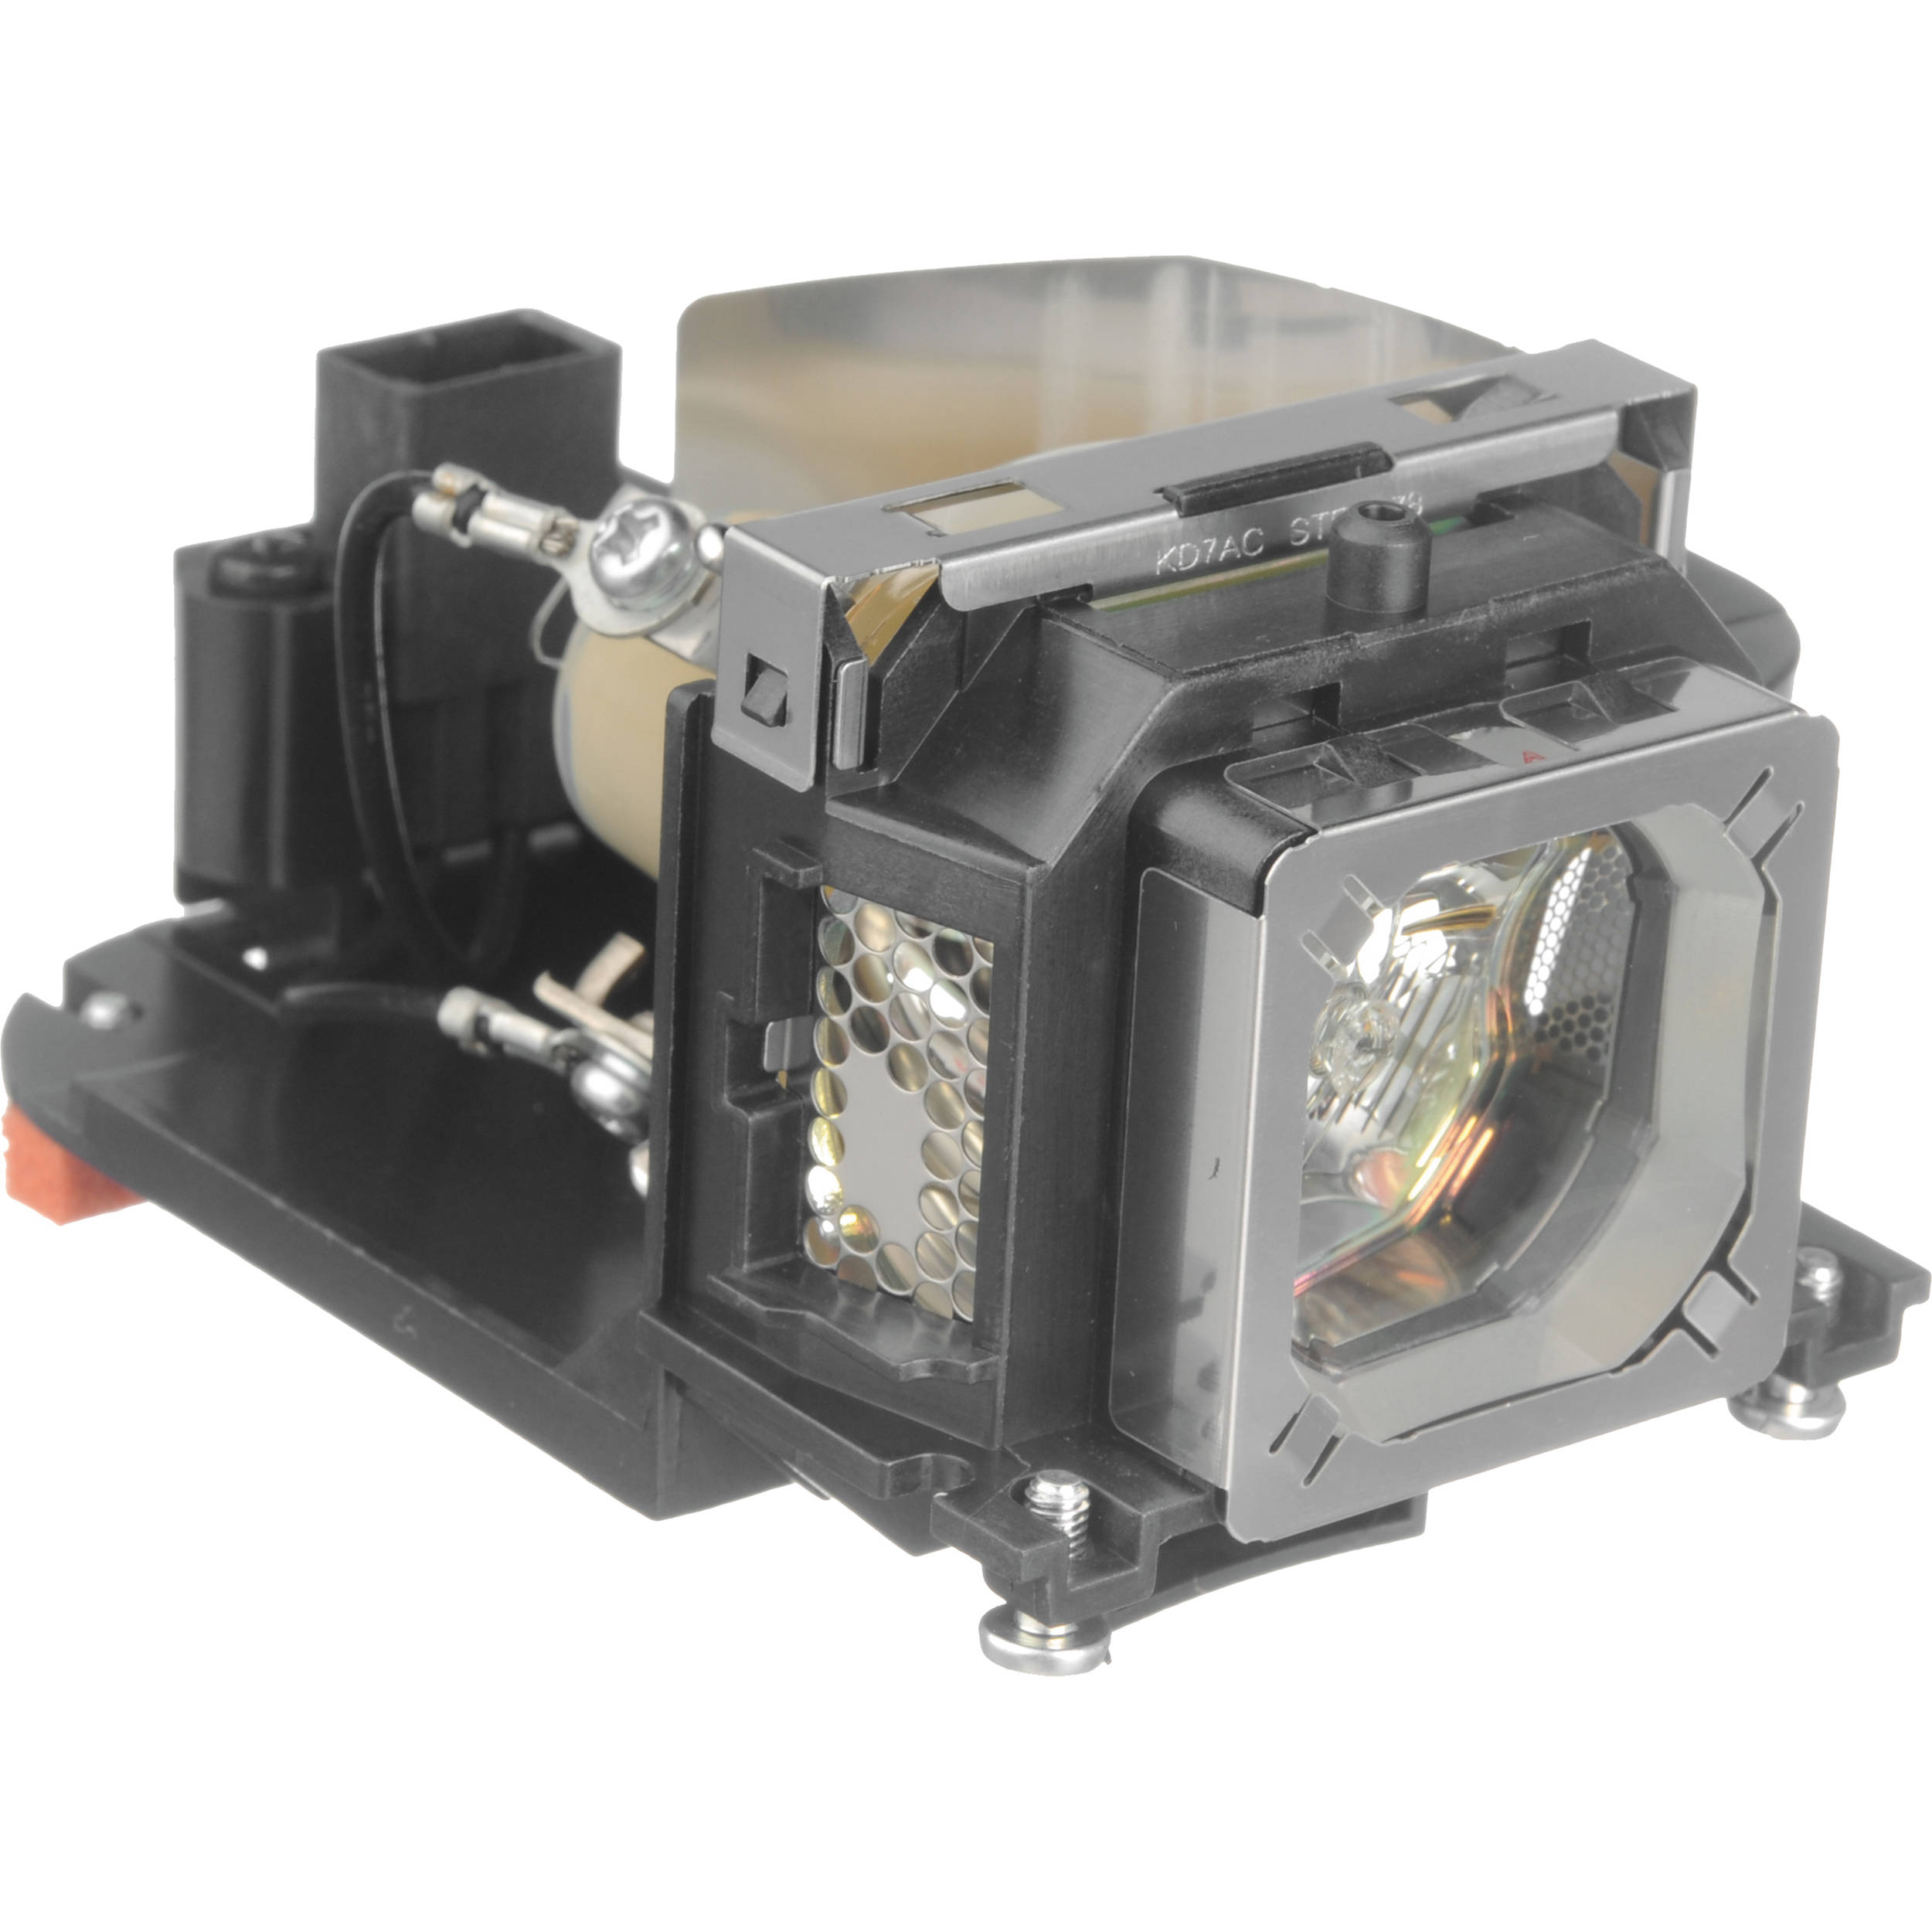 sanyo projector replacement lamp for plc xw60 610 339 1700 b h. Black Bedroom Furniture Sets. Home Design Ideas